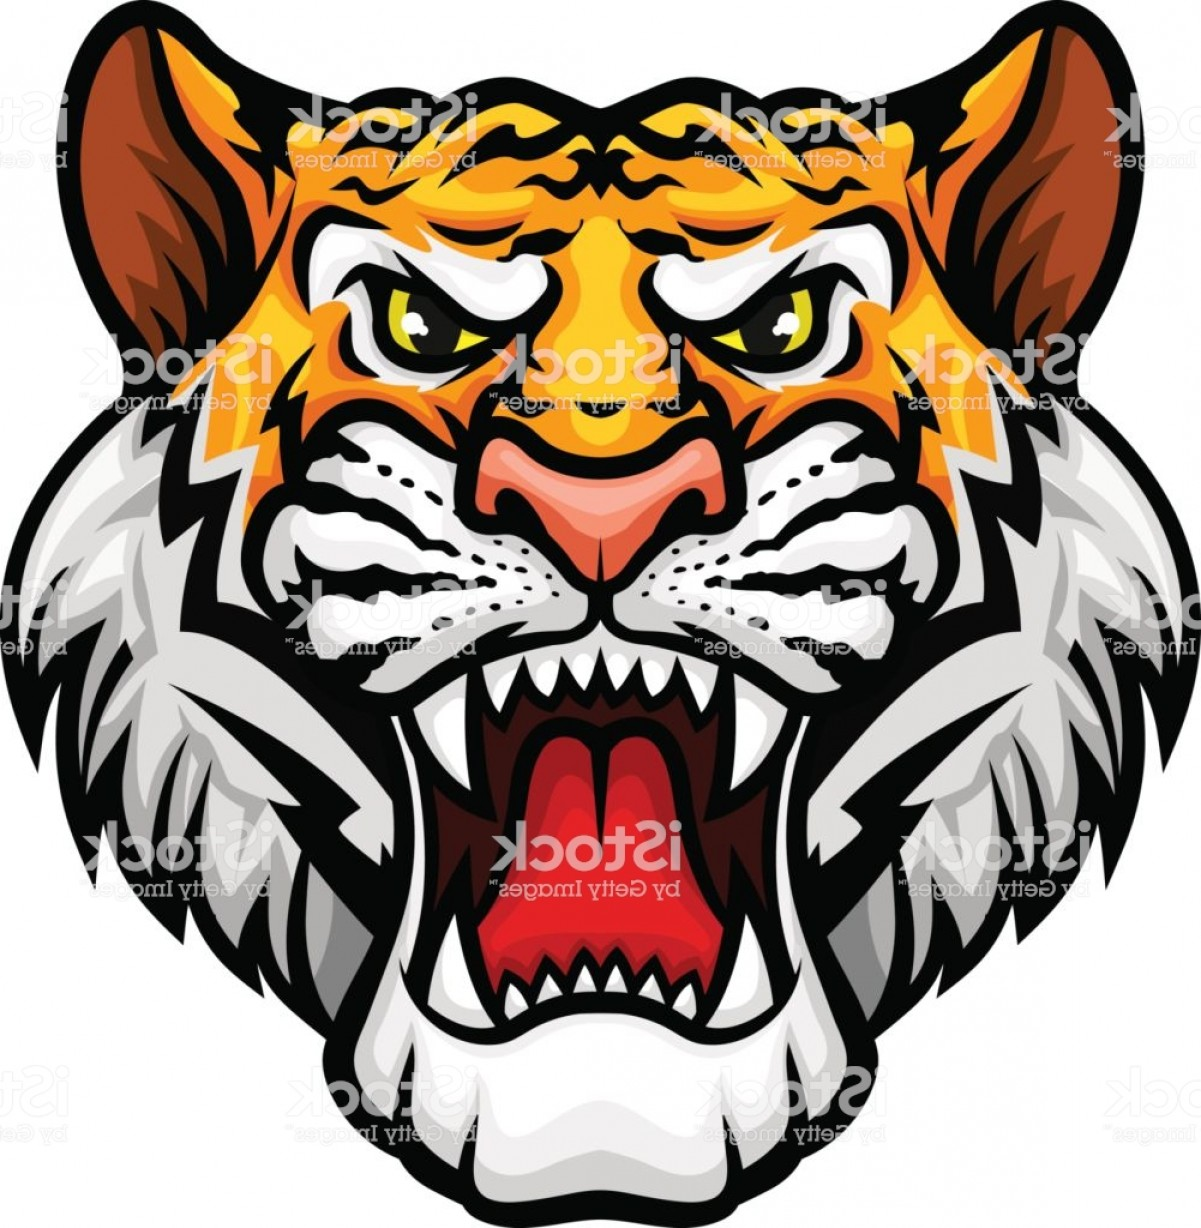 Full Body Tiger Roaring Vector: Tiger Roaring Head Muzzle Vector Mascot Icon Gm